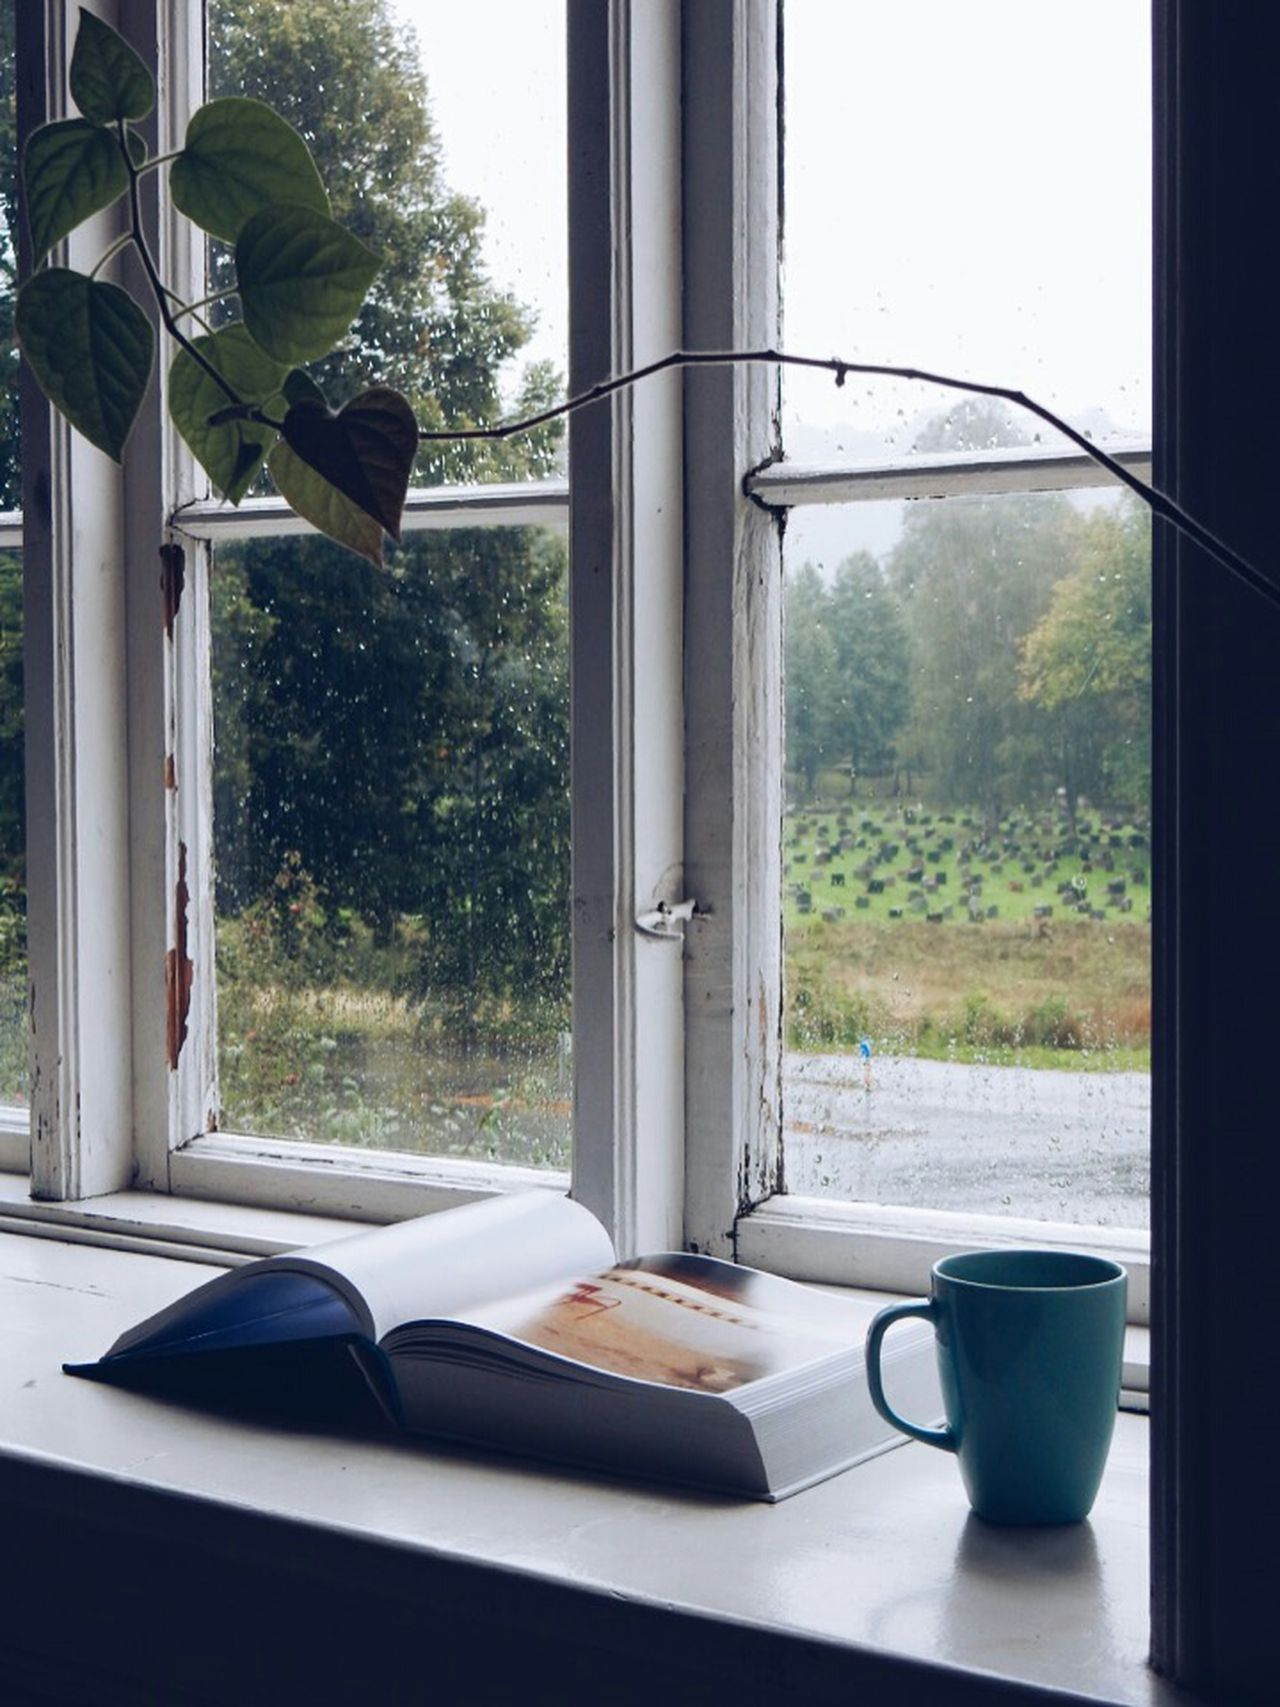 Coffee At Home Windowsill Coffee Coffee Break Rain Raindrops Reading Book The View From My Window Melancolic Windowsills Good Morning Coffeetime Books Morning Rituals Morning Coffeelover Coffee Cup Coffeebreak Coffeeaddict Stairsandsteps Reading Books Reading & Relaxing Books ♥ Read